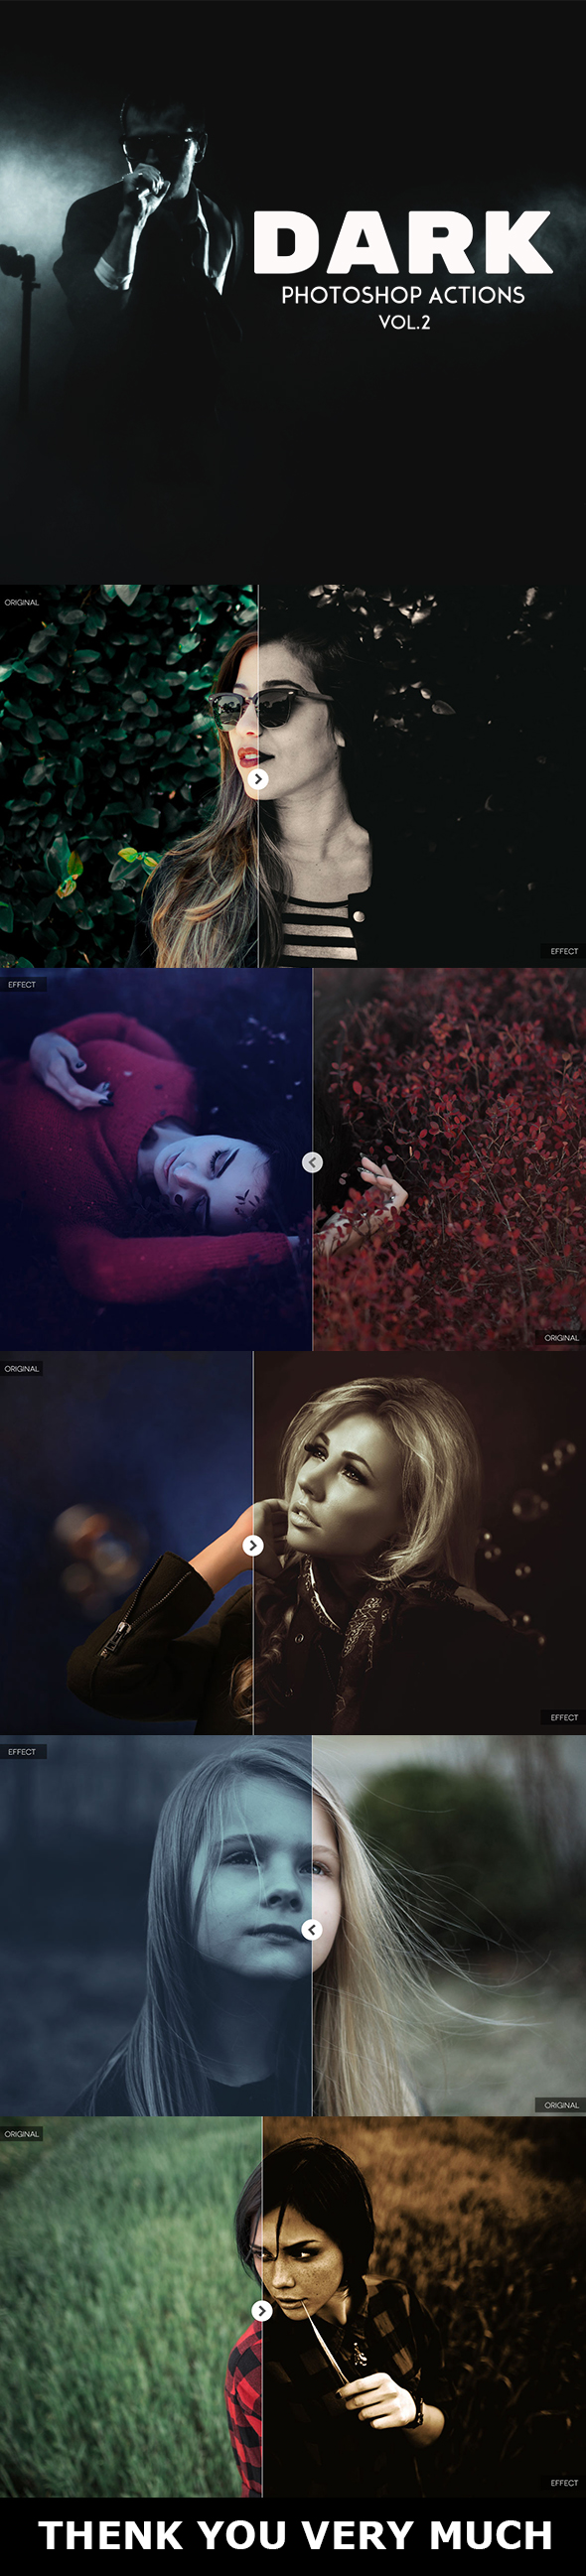 Dark Photoshop Actions Vol.2 - Photo Effects Actions